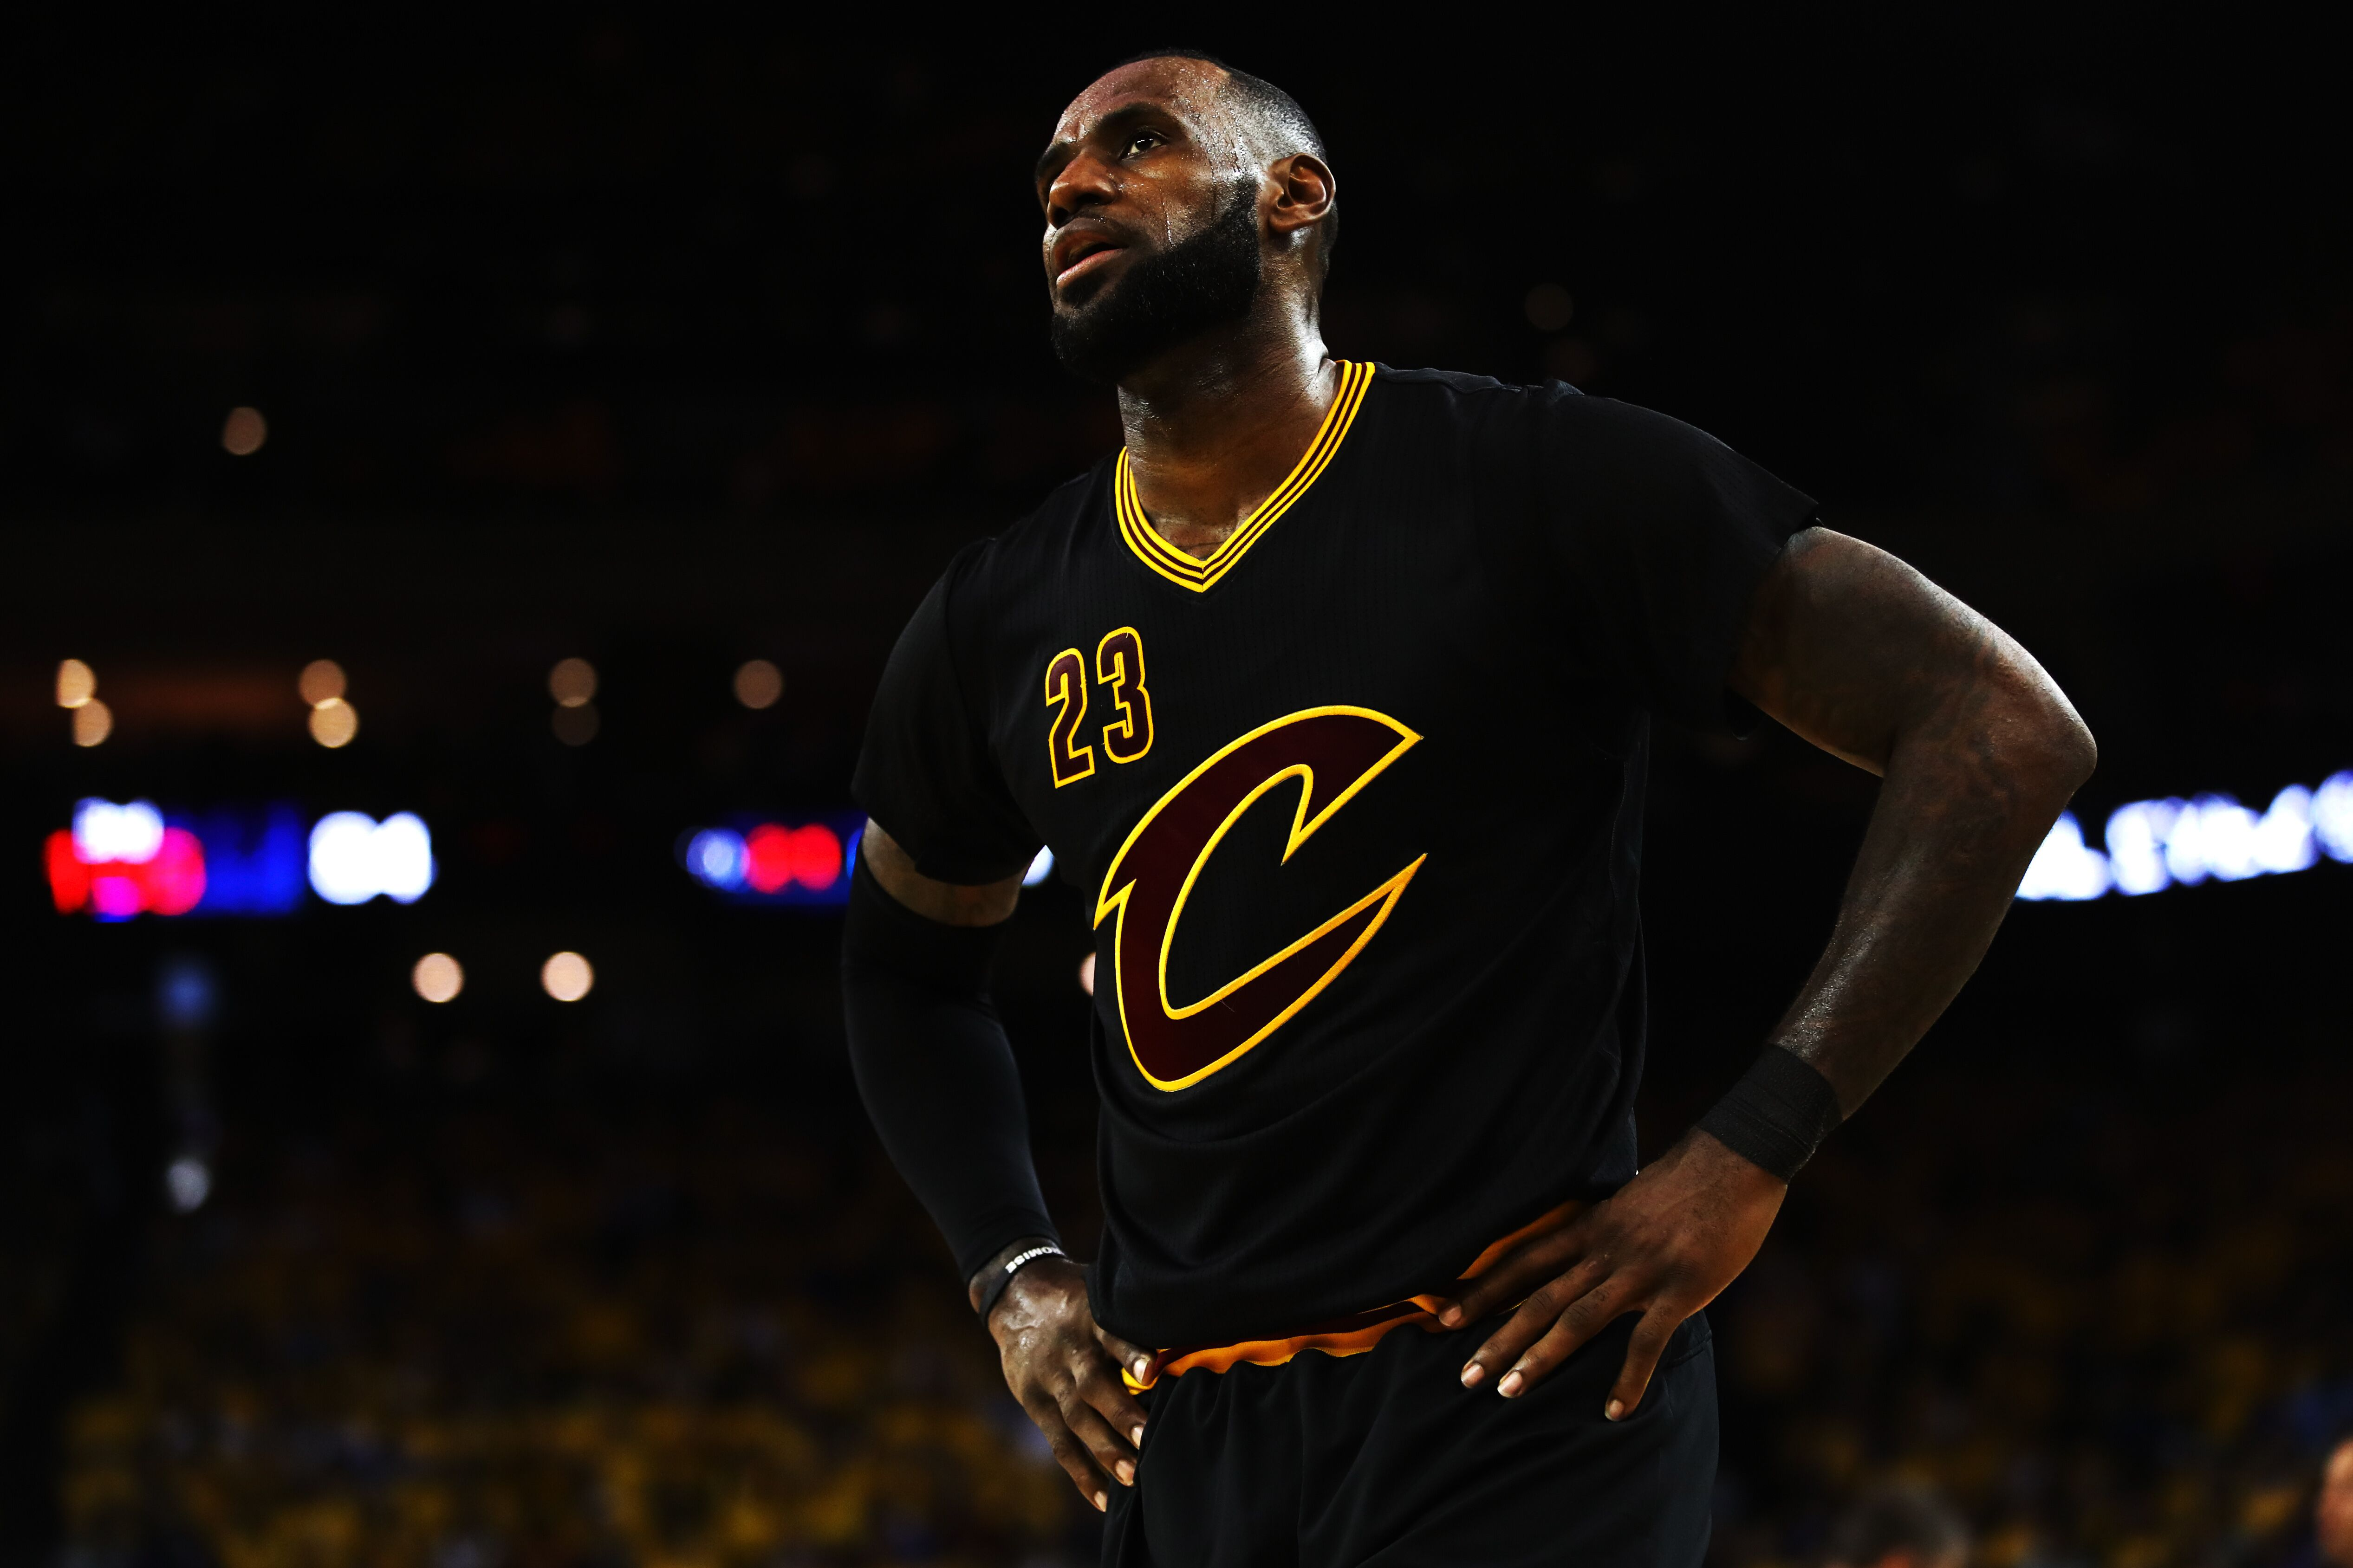 Nba Rumors Most Likely Landing Spots For Lebron James In